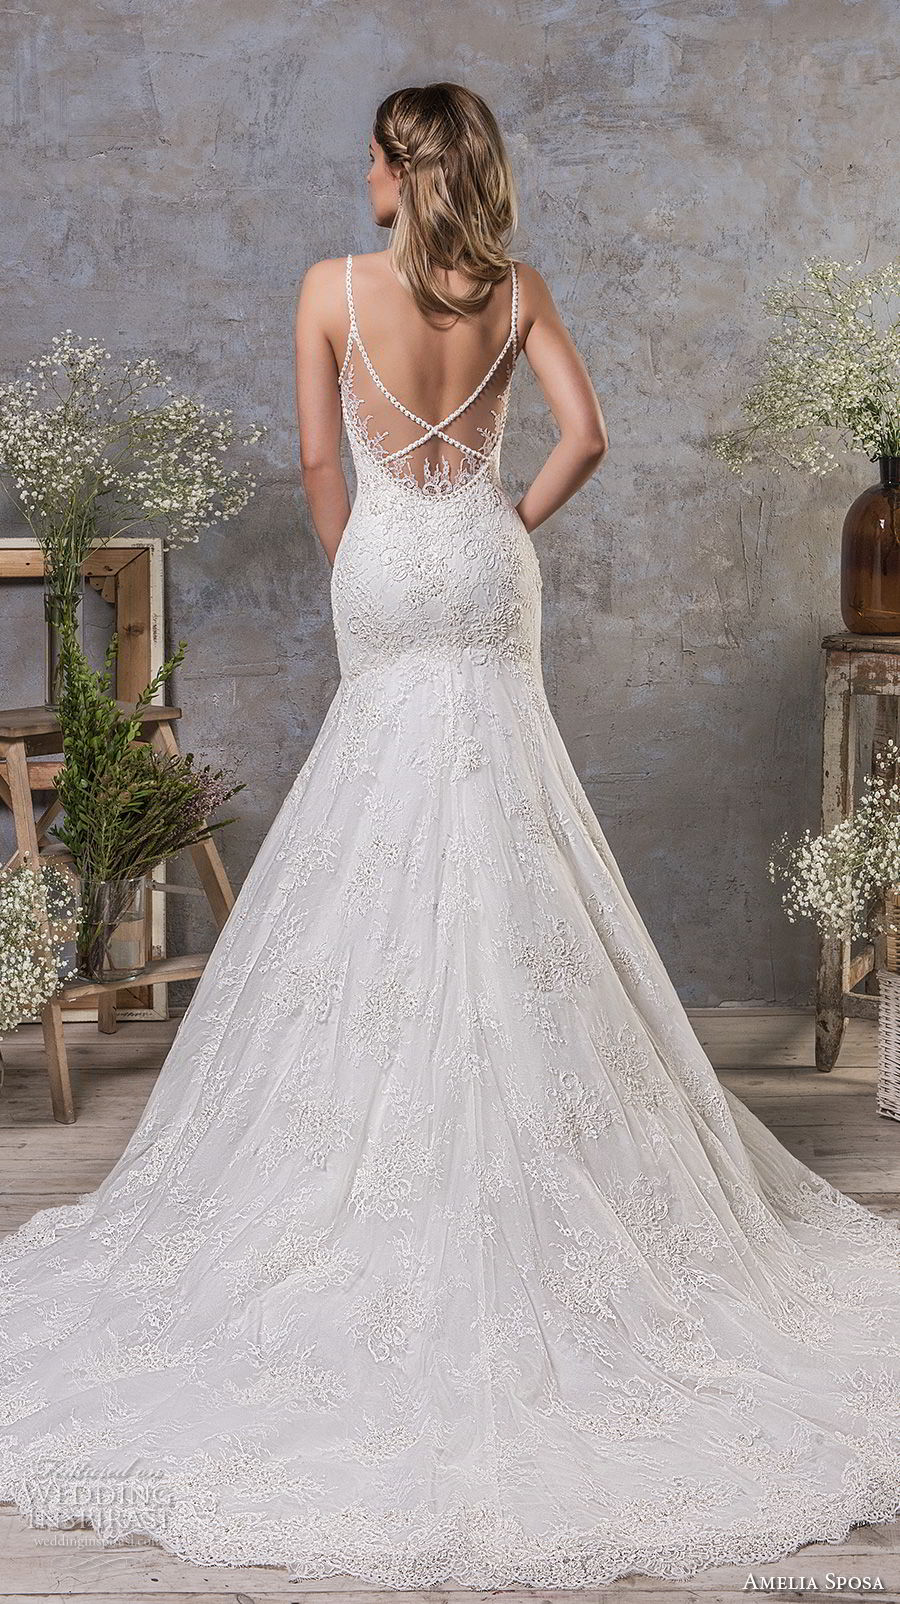 amelia sposa fall 2018 bridal spaghetti strap sweetheart neckline heavily embellished bodice drop waist a line wedding dress open strap back chapel train (7) bv